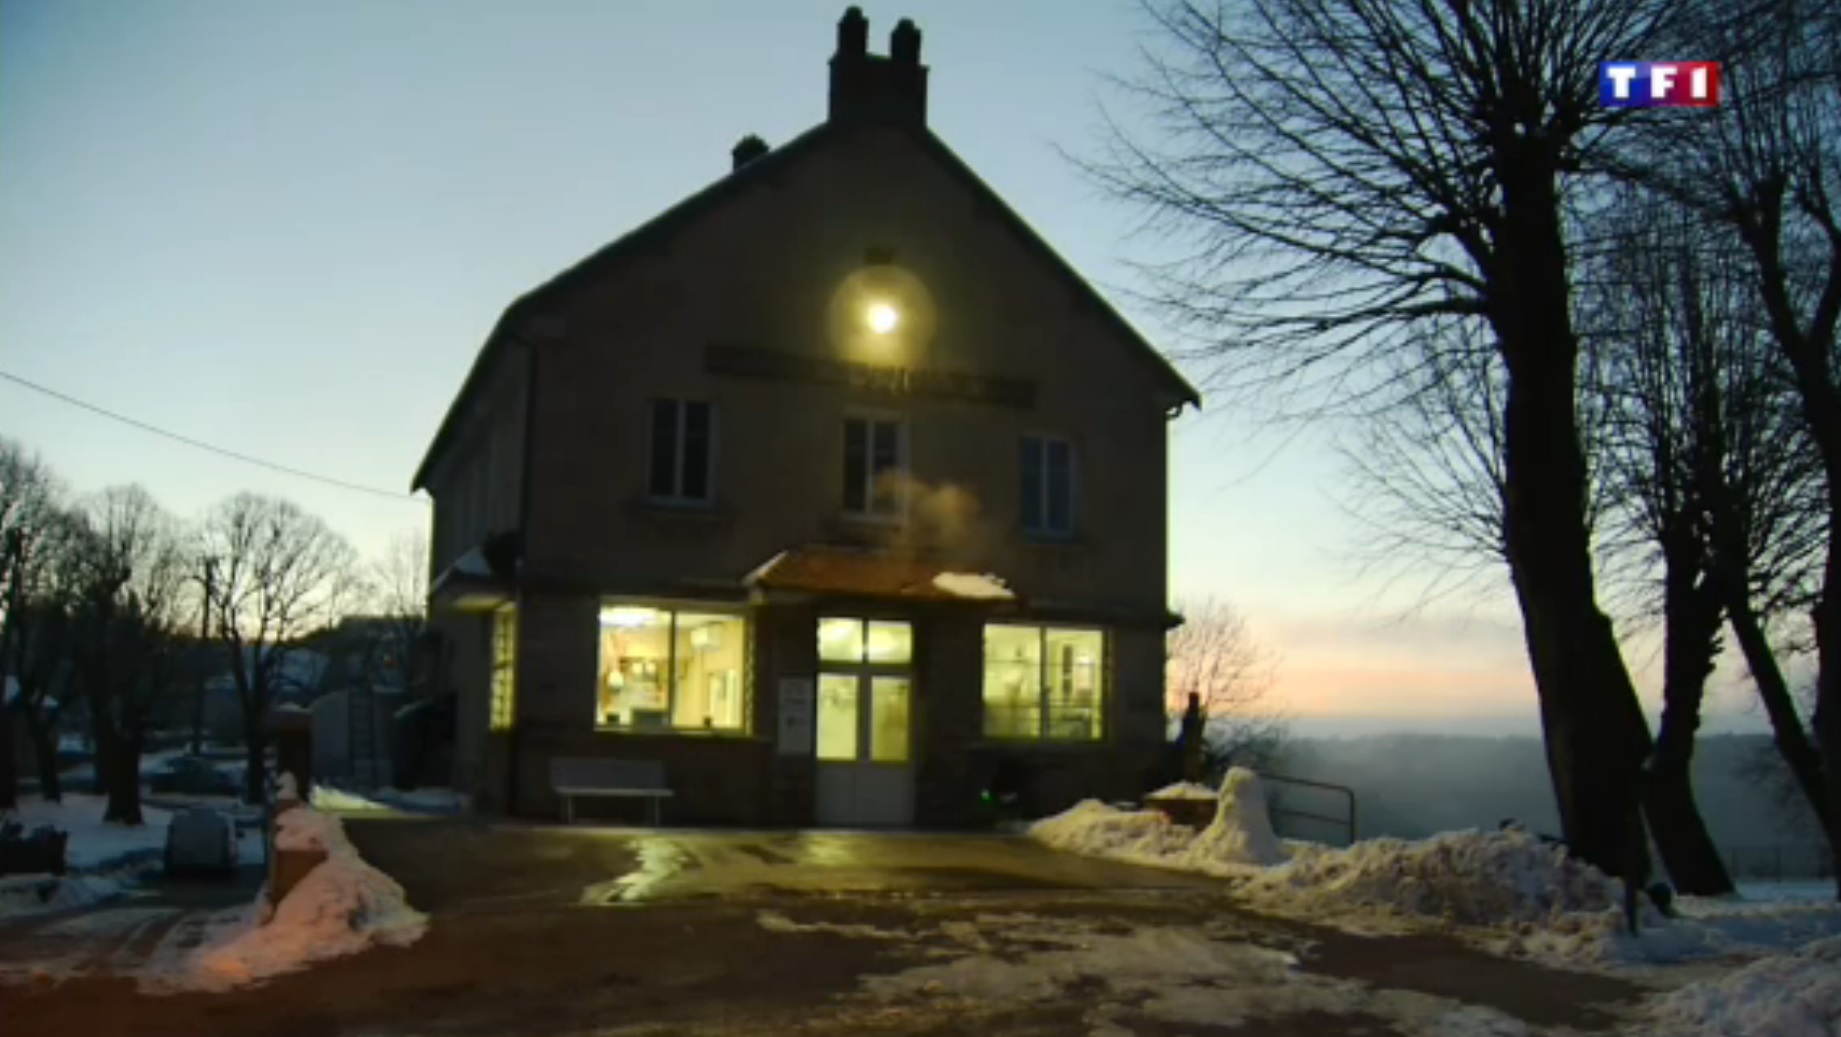 TF1 Jura (2-5) - une famille de fromagers  5